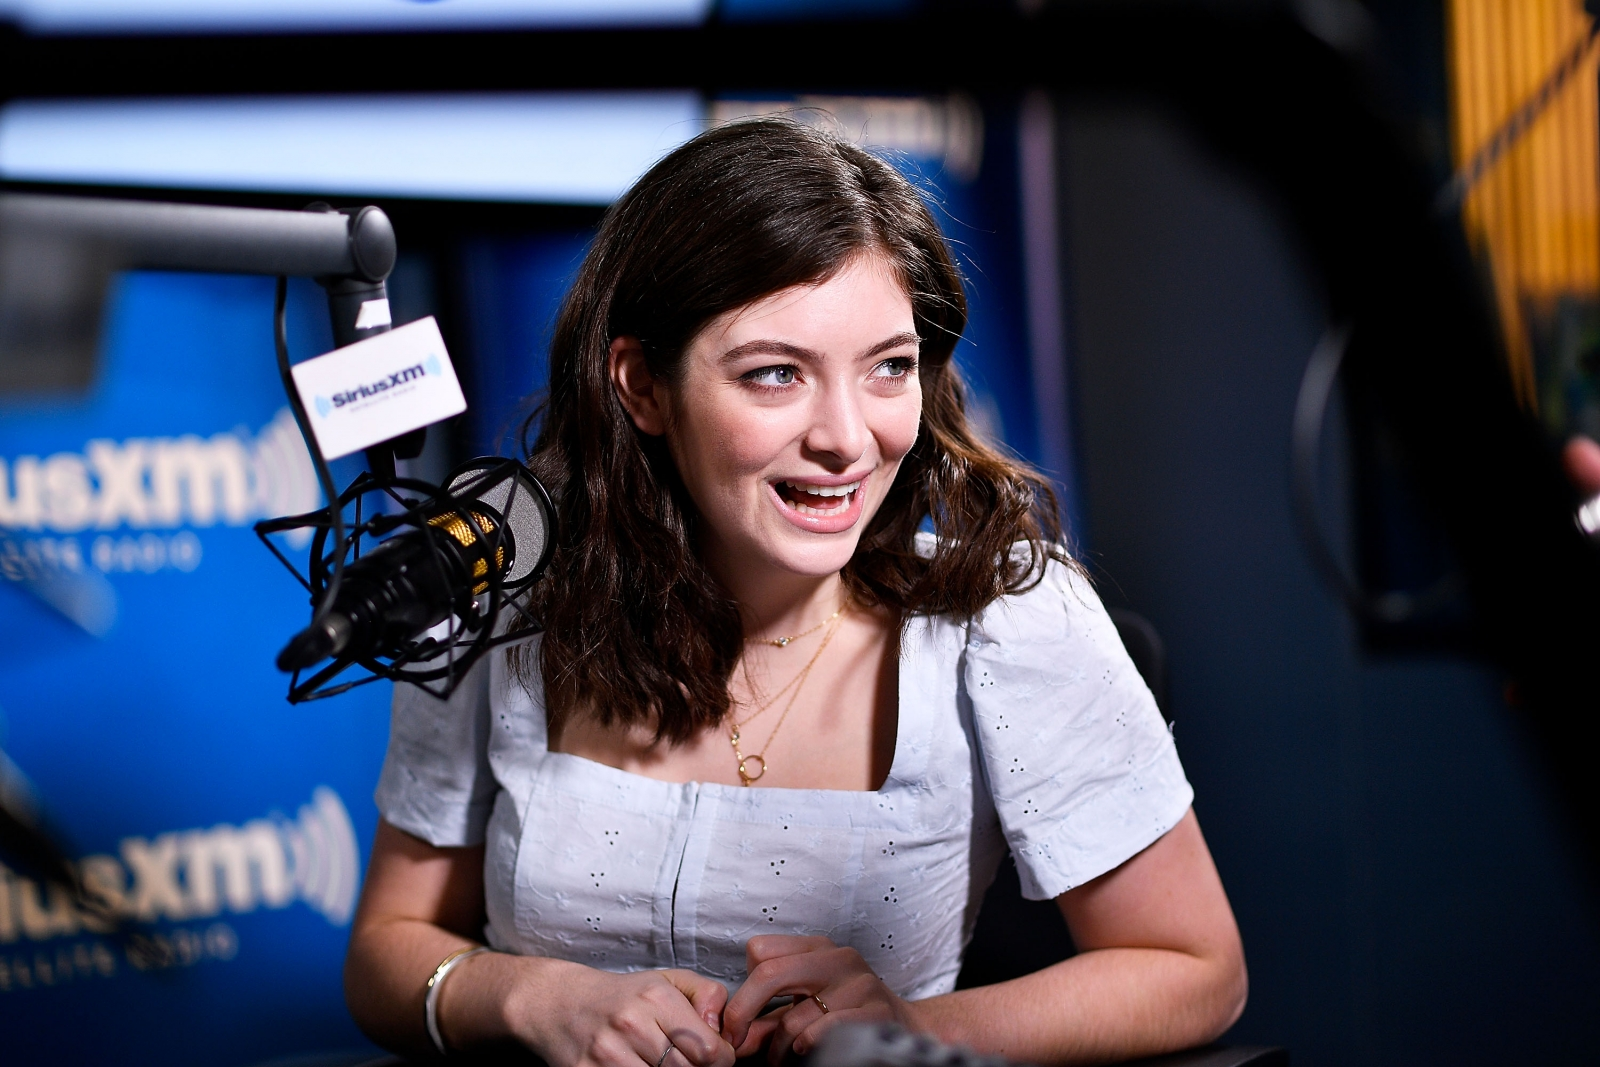 Lorde surprises shop assistant with Governors Ball invite